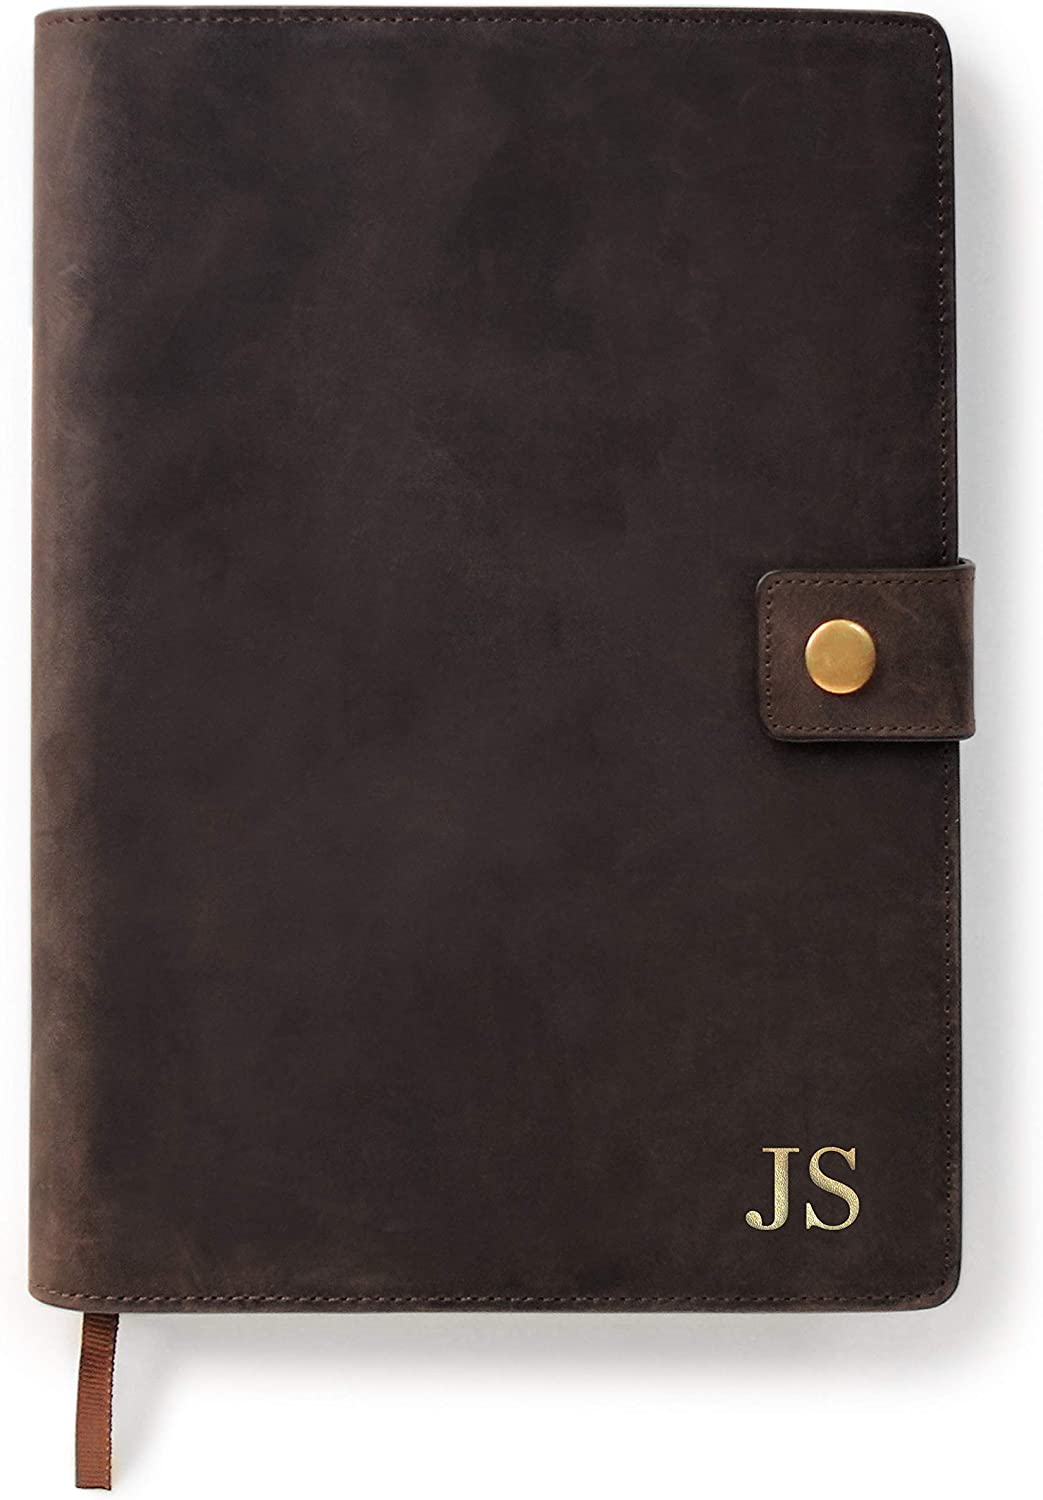 CASE ELEGANCE Monogrammed Full Grain Premium Leather Refillable Journal Cover with A5 Lined Notebook, Pen Loop, Card Slots, Brass Snap